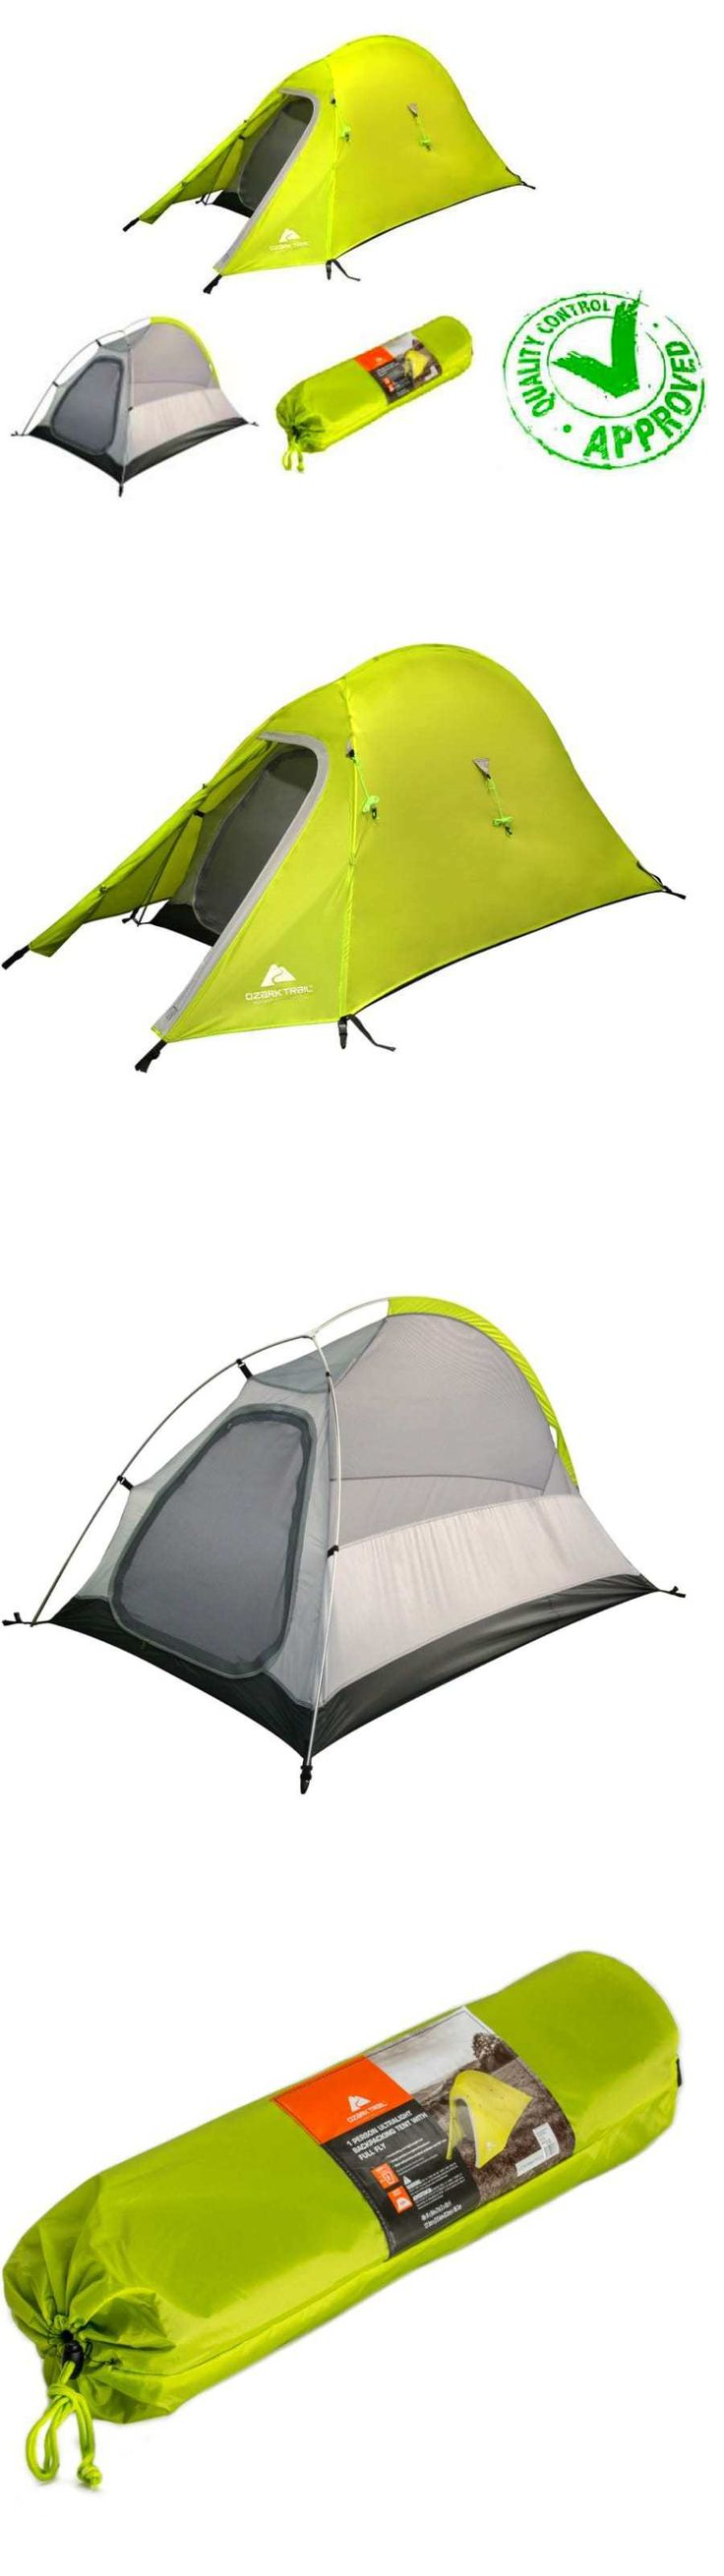 Tents 179010: Ultra Light Back Packing 4 X 7 X 42 Tent With Full Fly All Season Camp Beach -> BUY IT NOW ONLY: $49.03 on eBay!